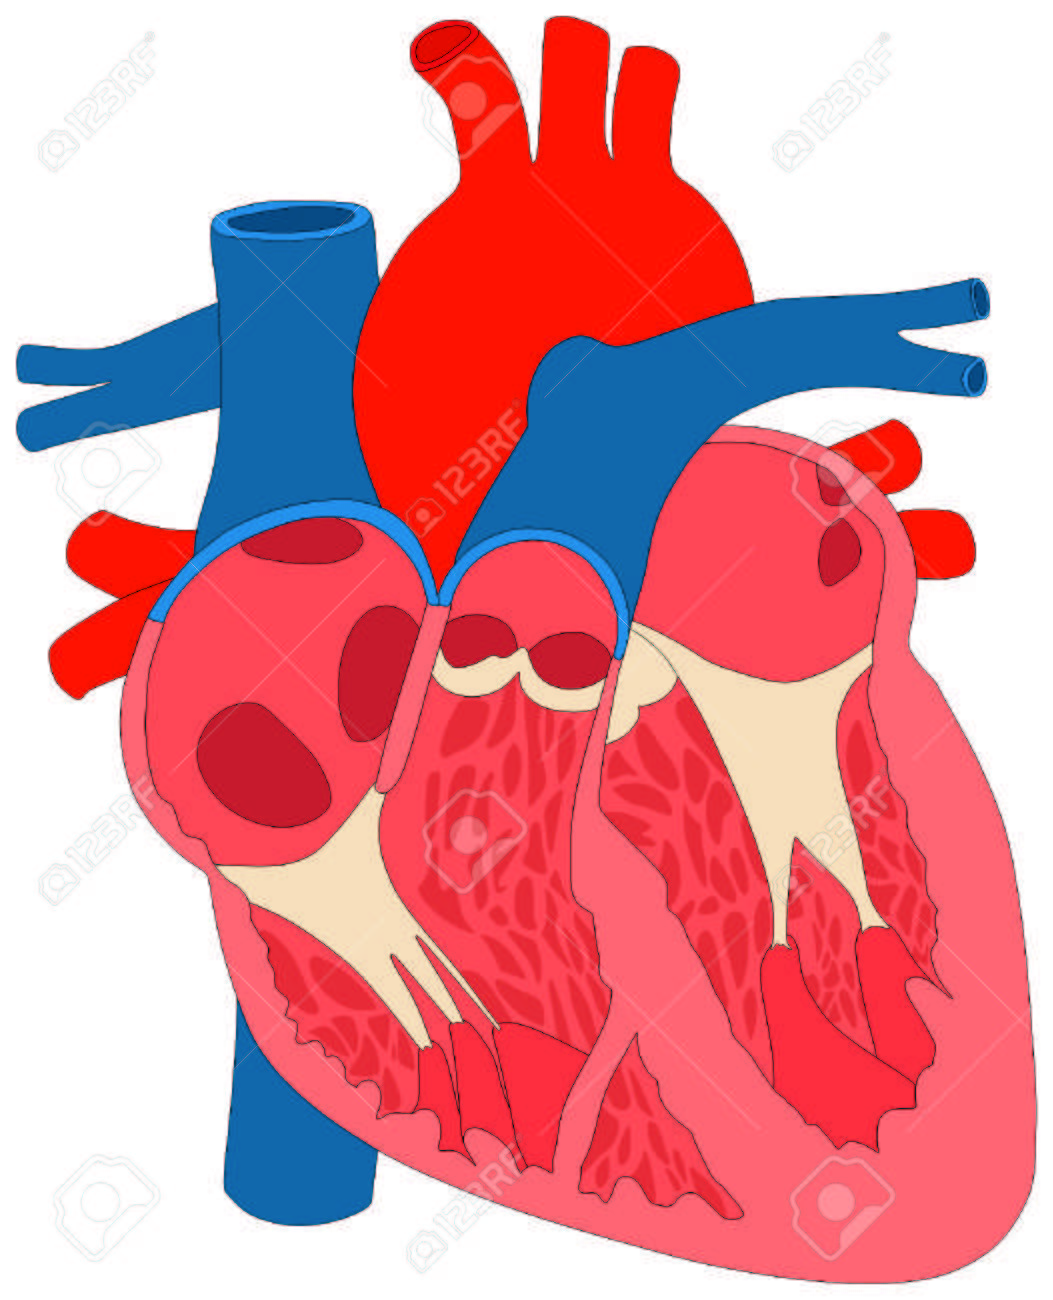 unlabeled heart diagram cross section pj wiring homebrewtalk human muscle anatomy anatomical chart with all parts aorta aortic arch right